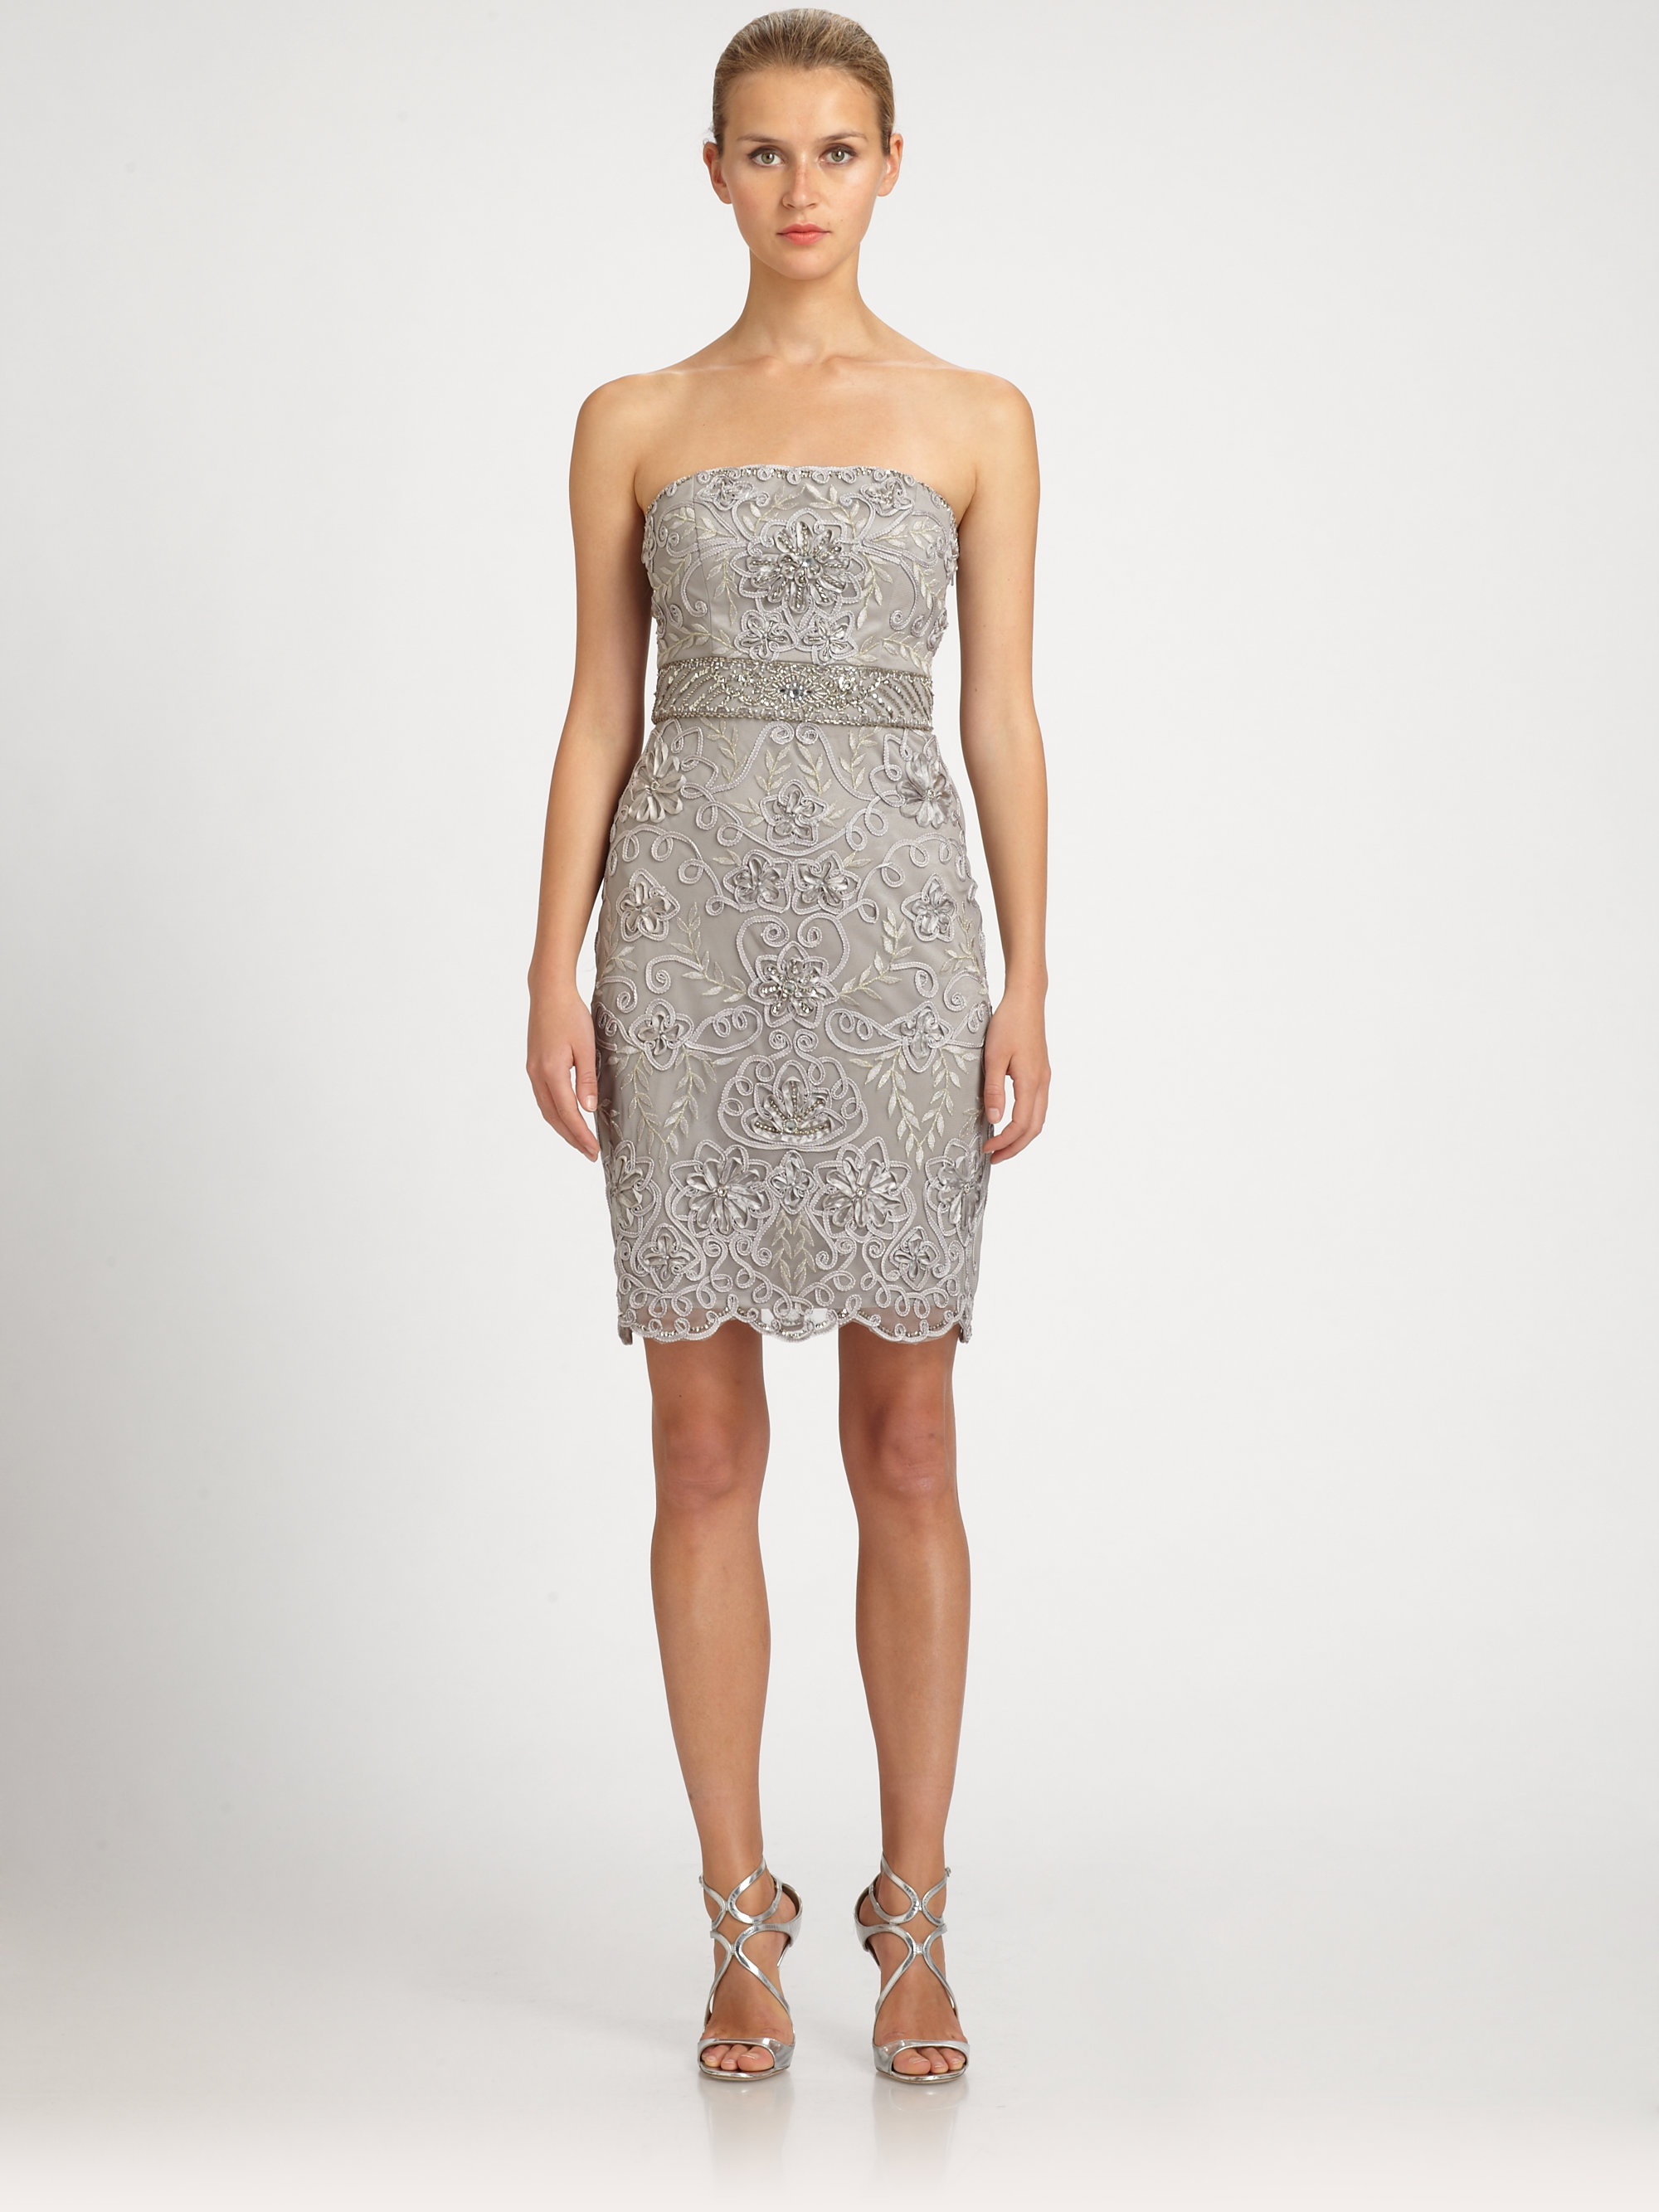 Sue wong Beaded Strapless Dress in Metallic - Lyst